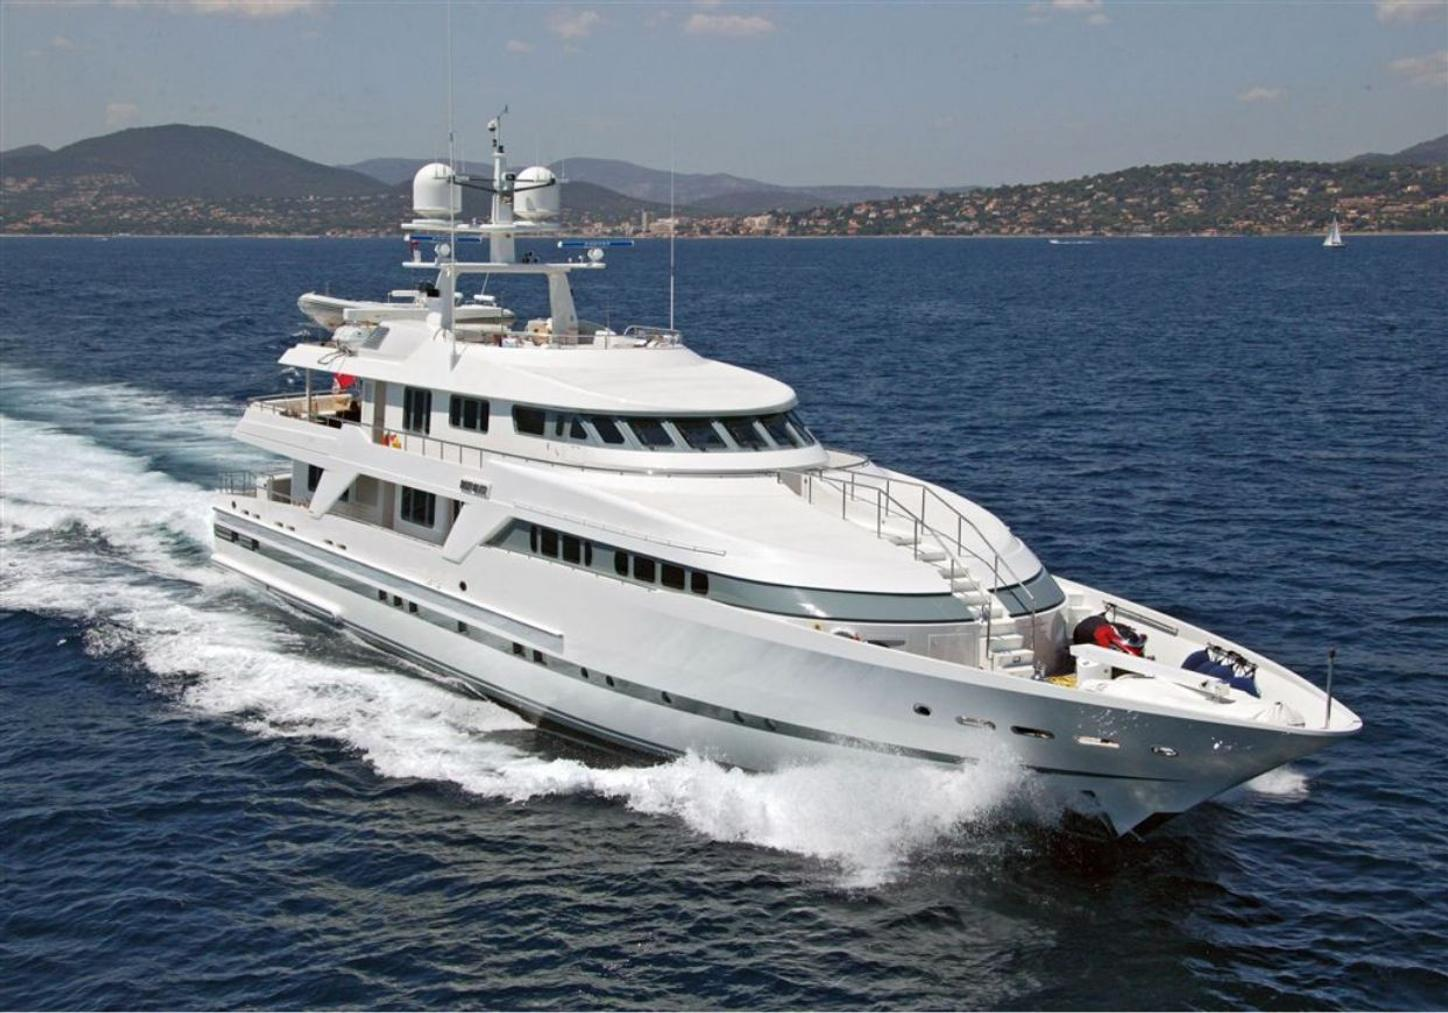 superyacht Deep Blue II cruising on a Mediterranean yacht charter